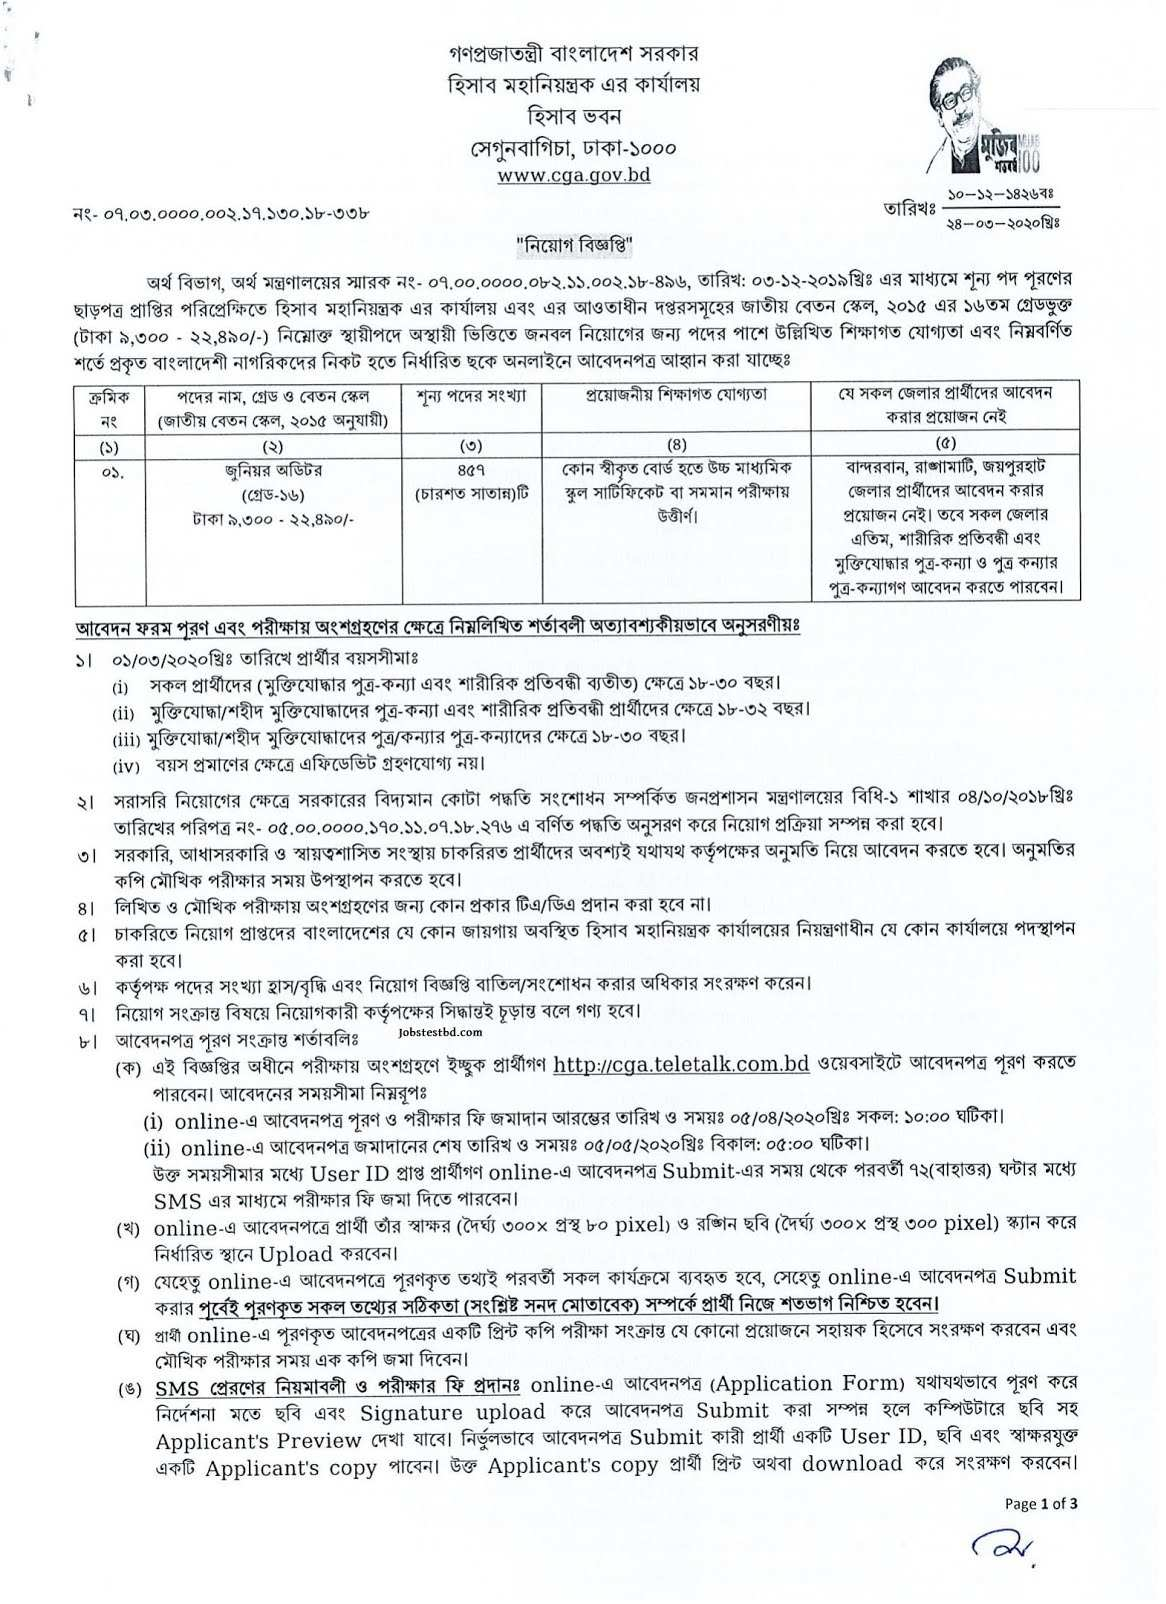 Office of the Controller General of Accounts Job Circular 2020-1